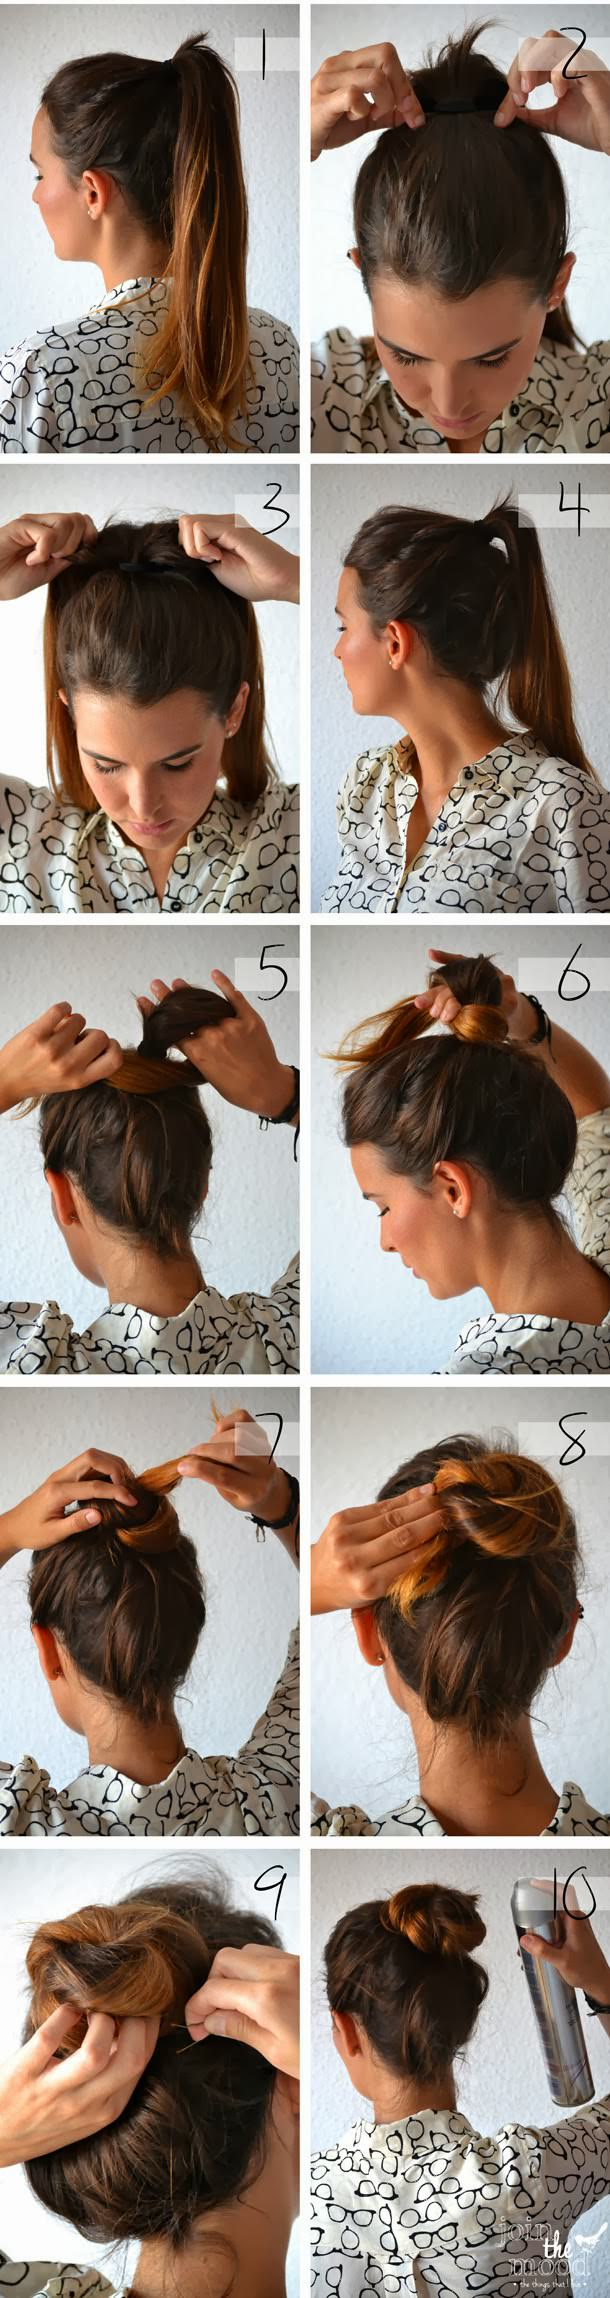 Cozy and Classy Winter Hairstyles to Try